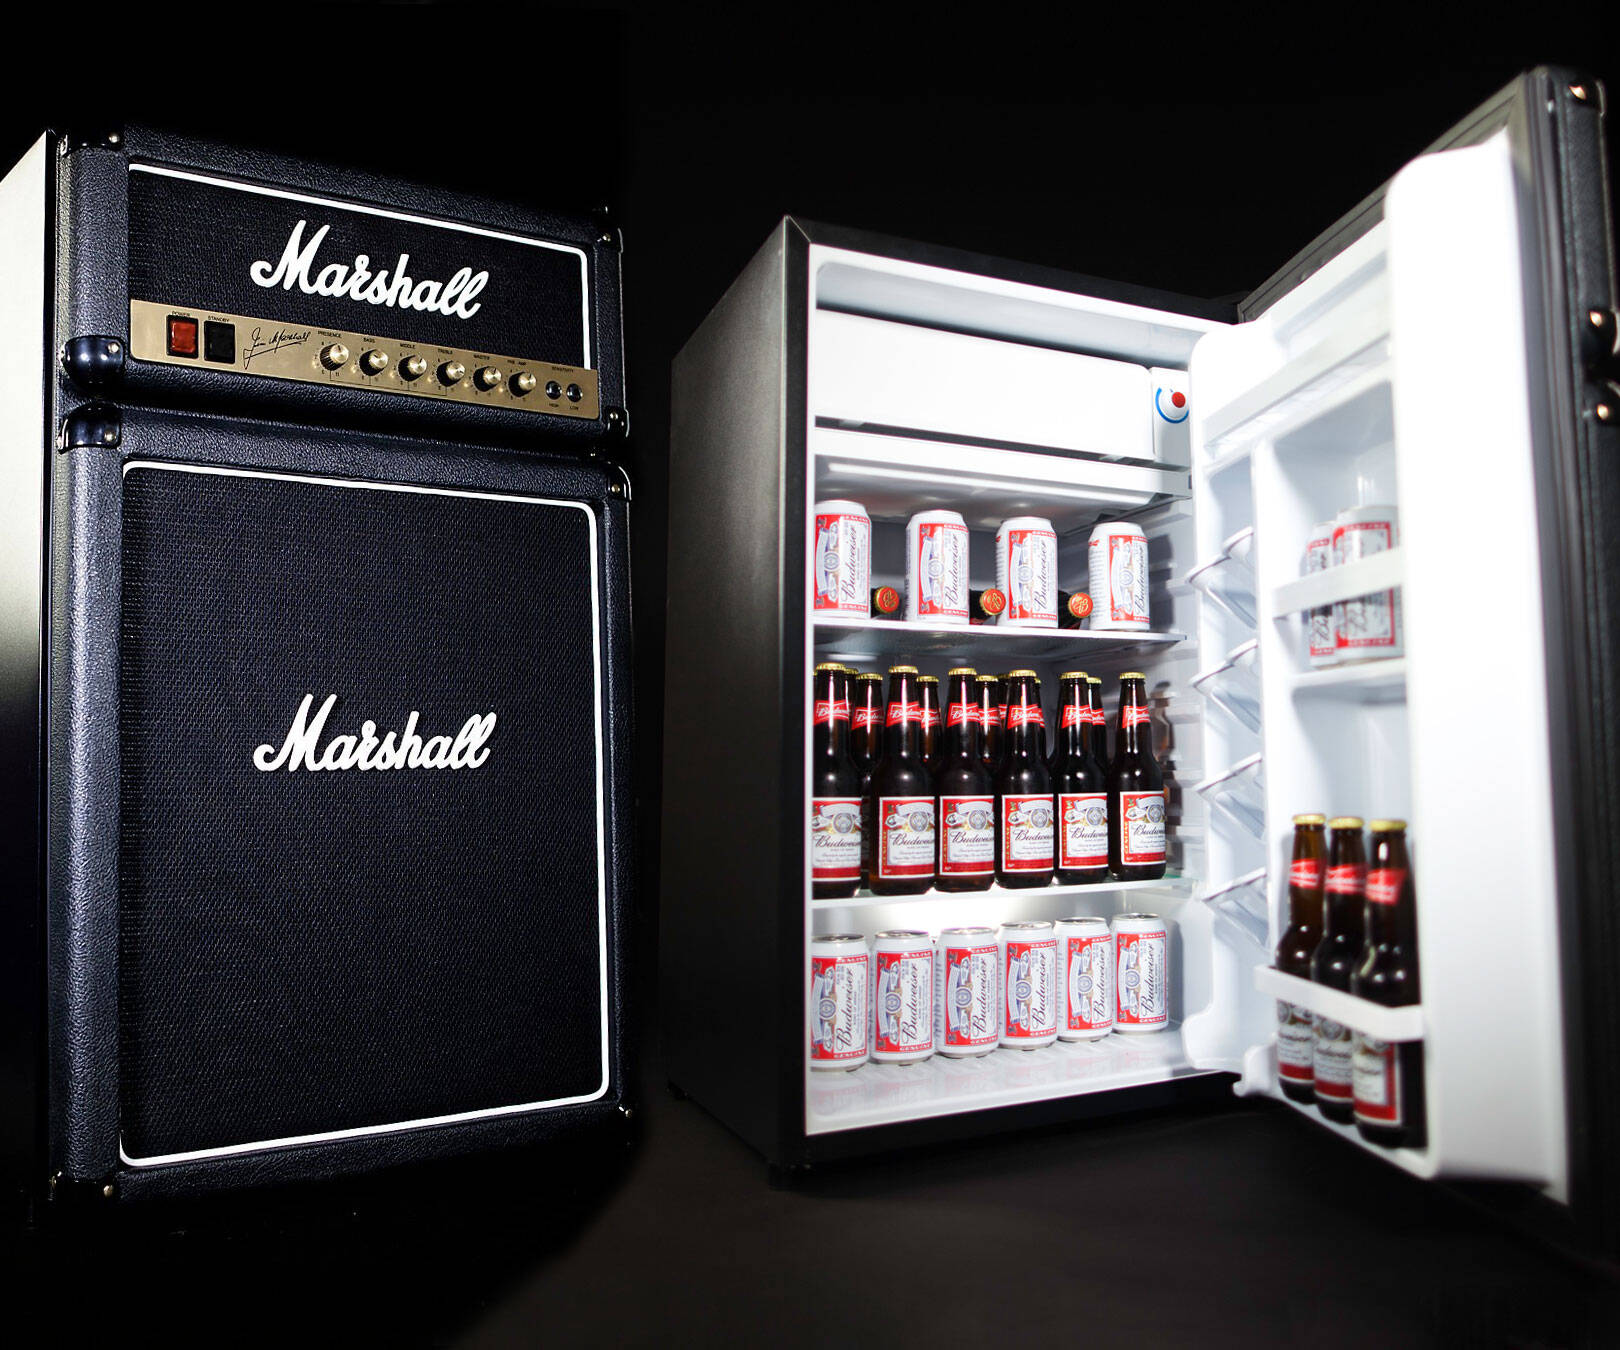 Marshall Amplifier Fridge - http://coolthings.us